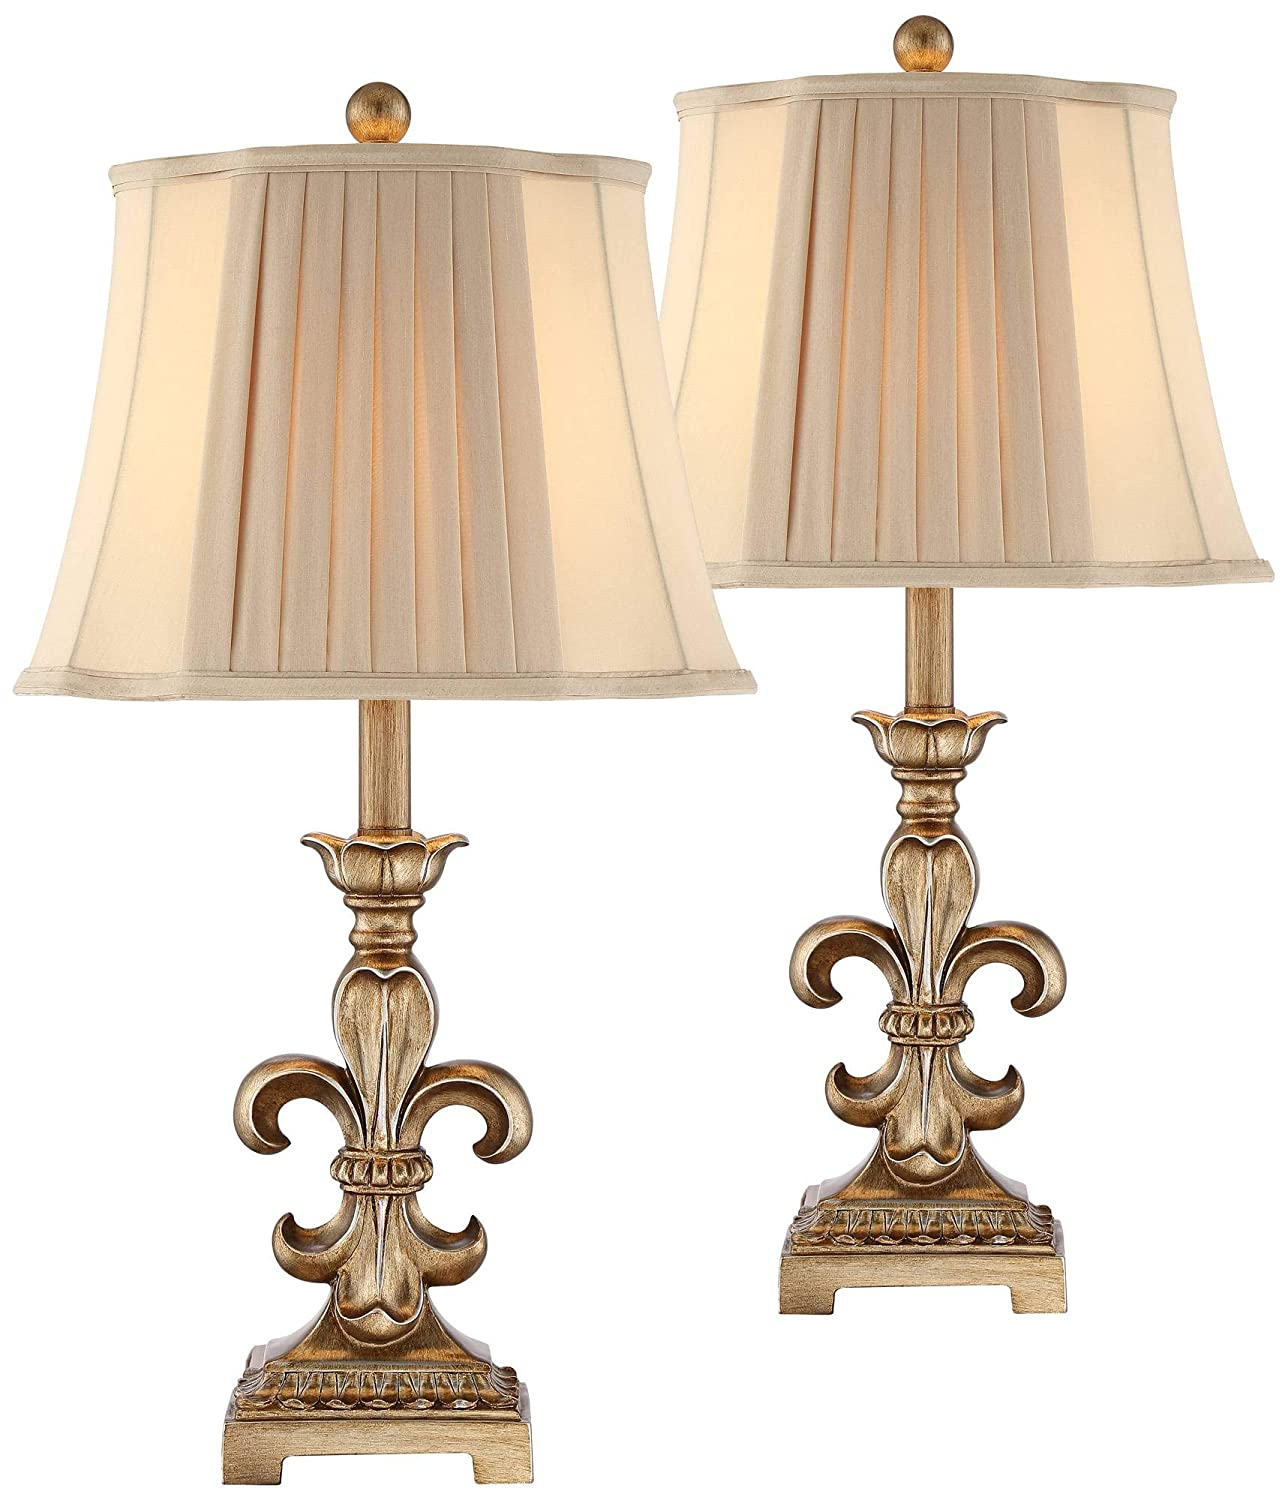 Louis Traditional Table Lamps Set of 2 Antique Gold Pleated Bell Shade for Living Room Family Bedroom Bedside - Regency Hill